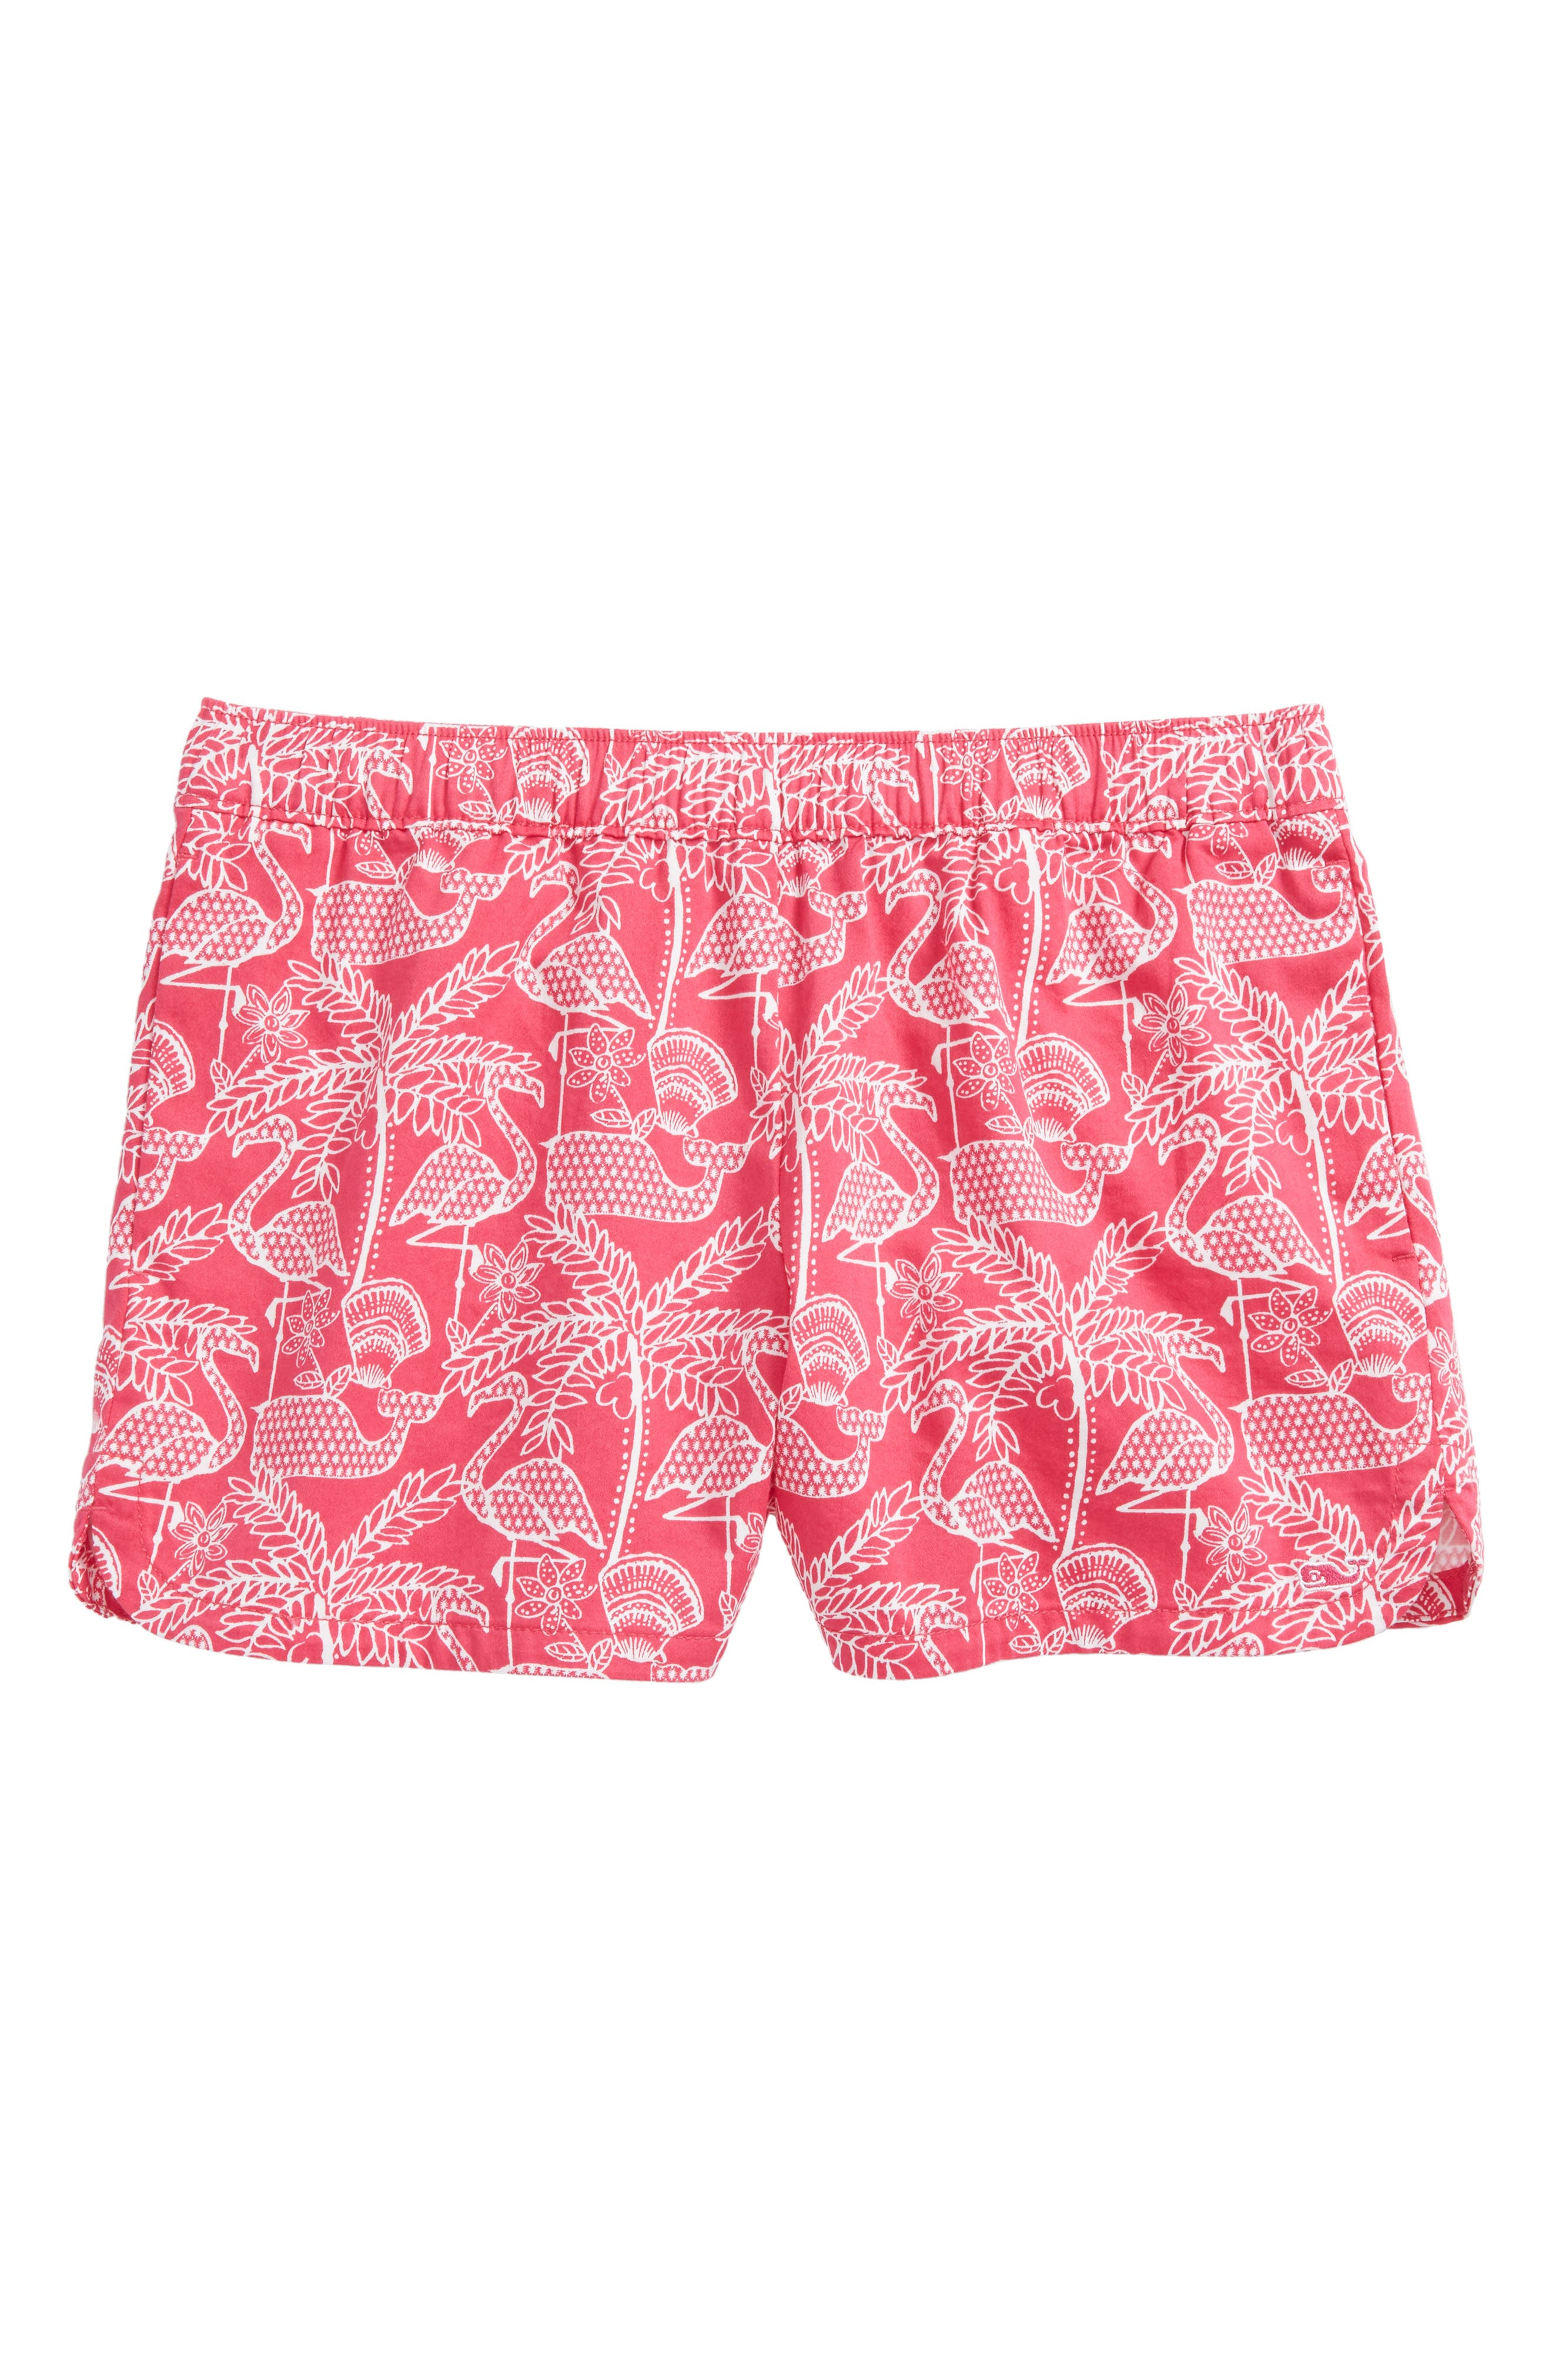 Flamingo Print Shorts,                         Main,                         color, 658